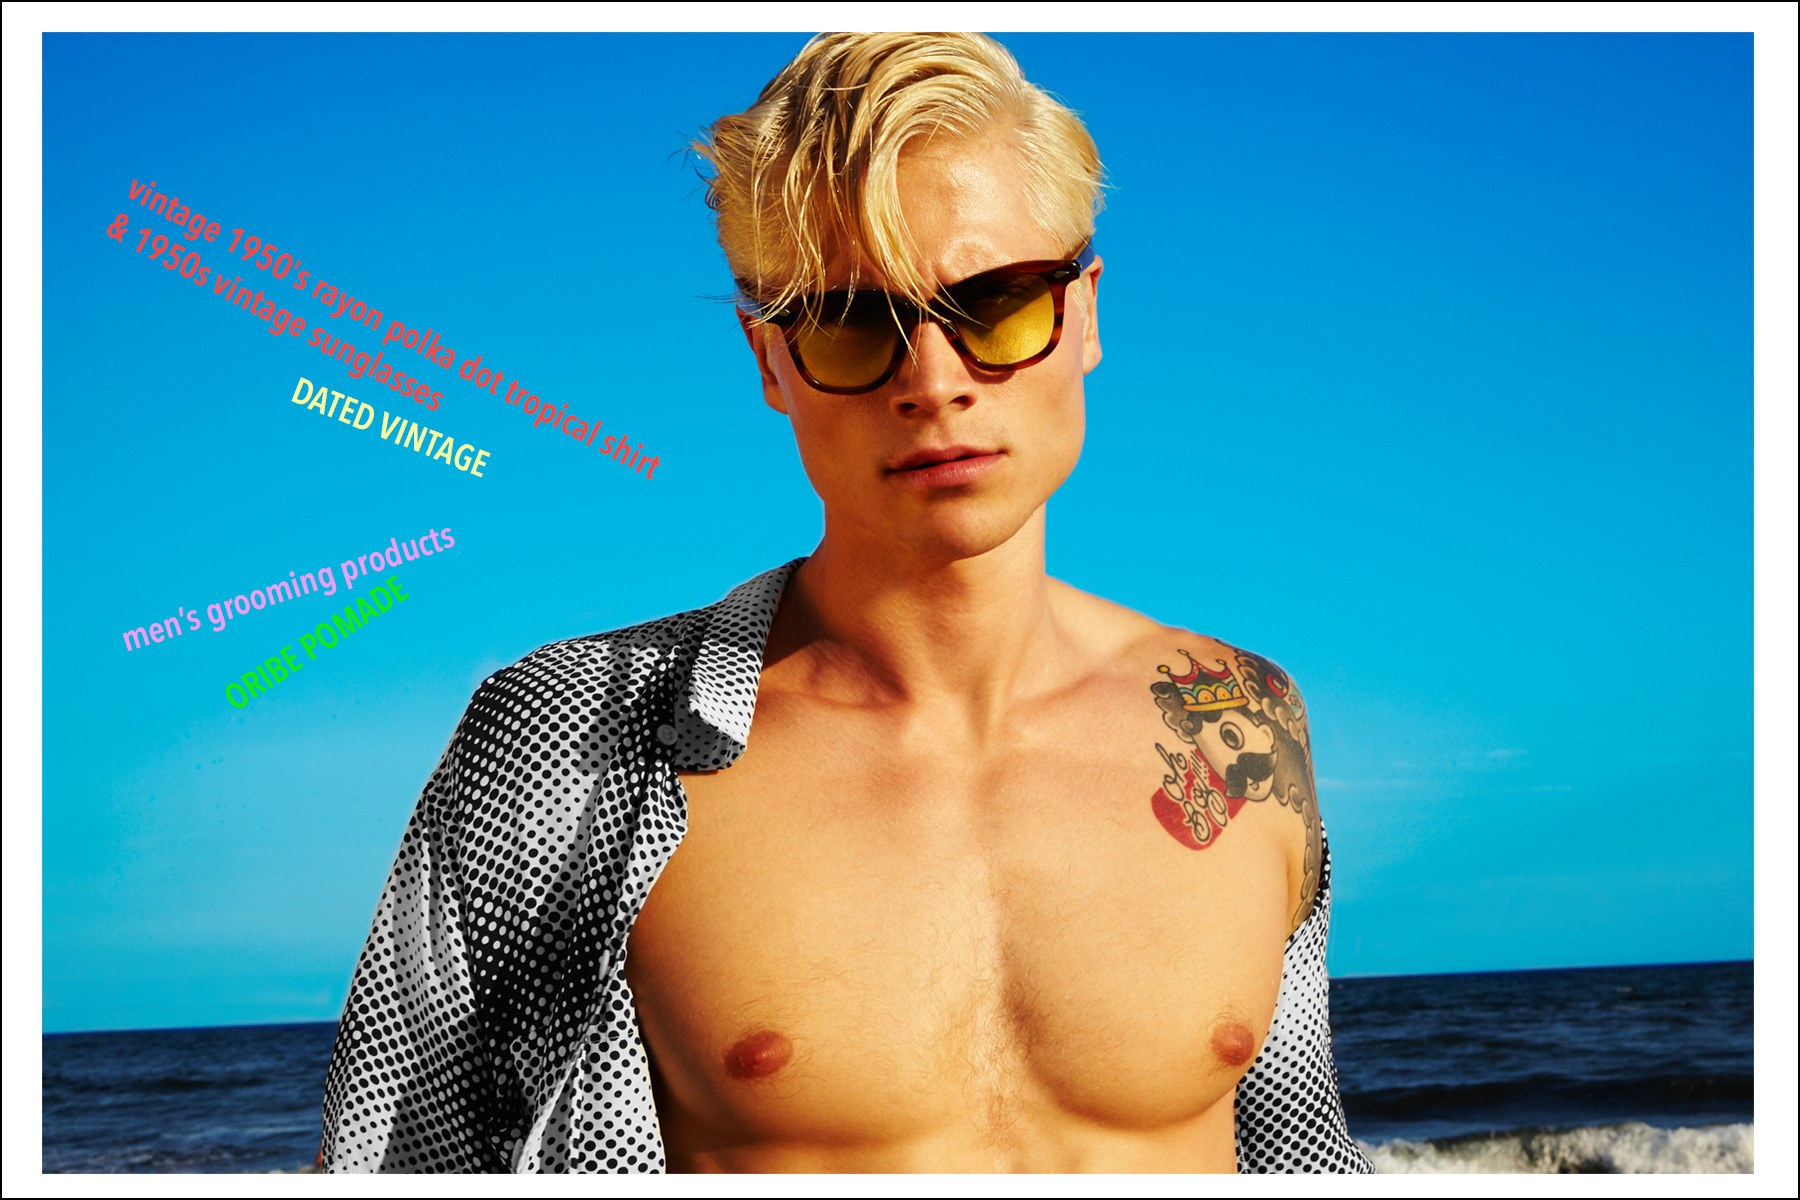 Male model Jake Filling featured in a Ponyboy magazine vintage Hawaiian shirt editorial. Photography by Alexander Thompson, photographed in the Rockaways, Queens.